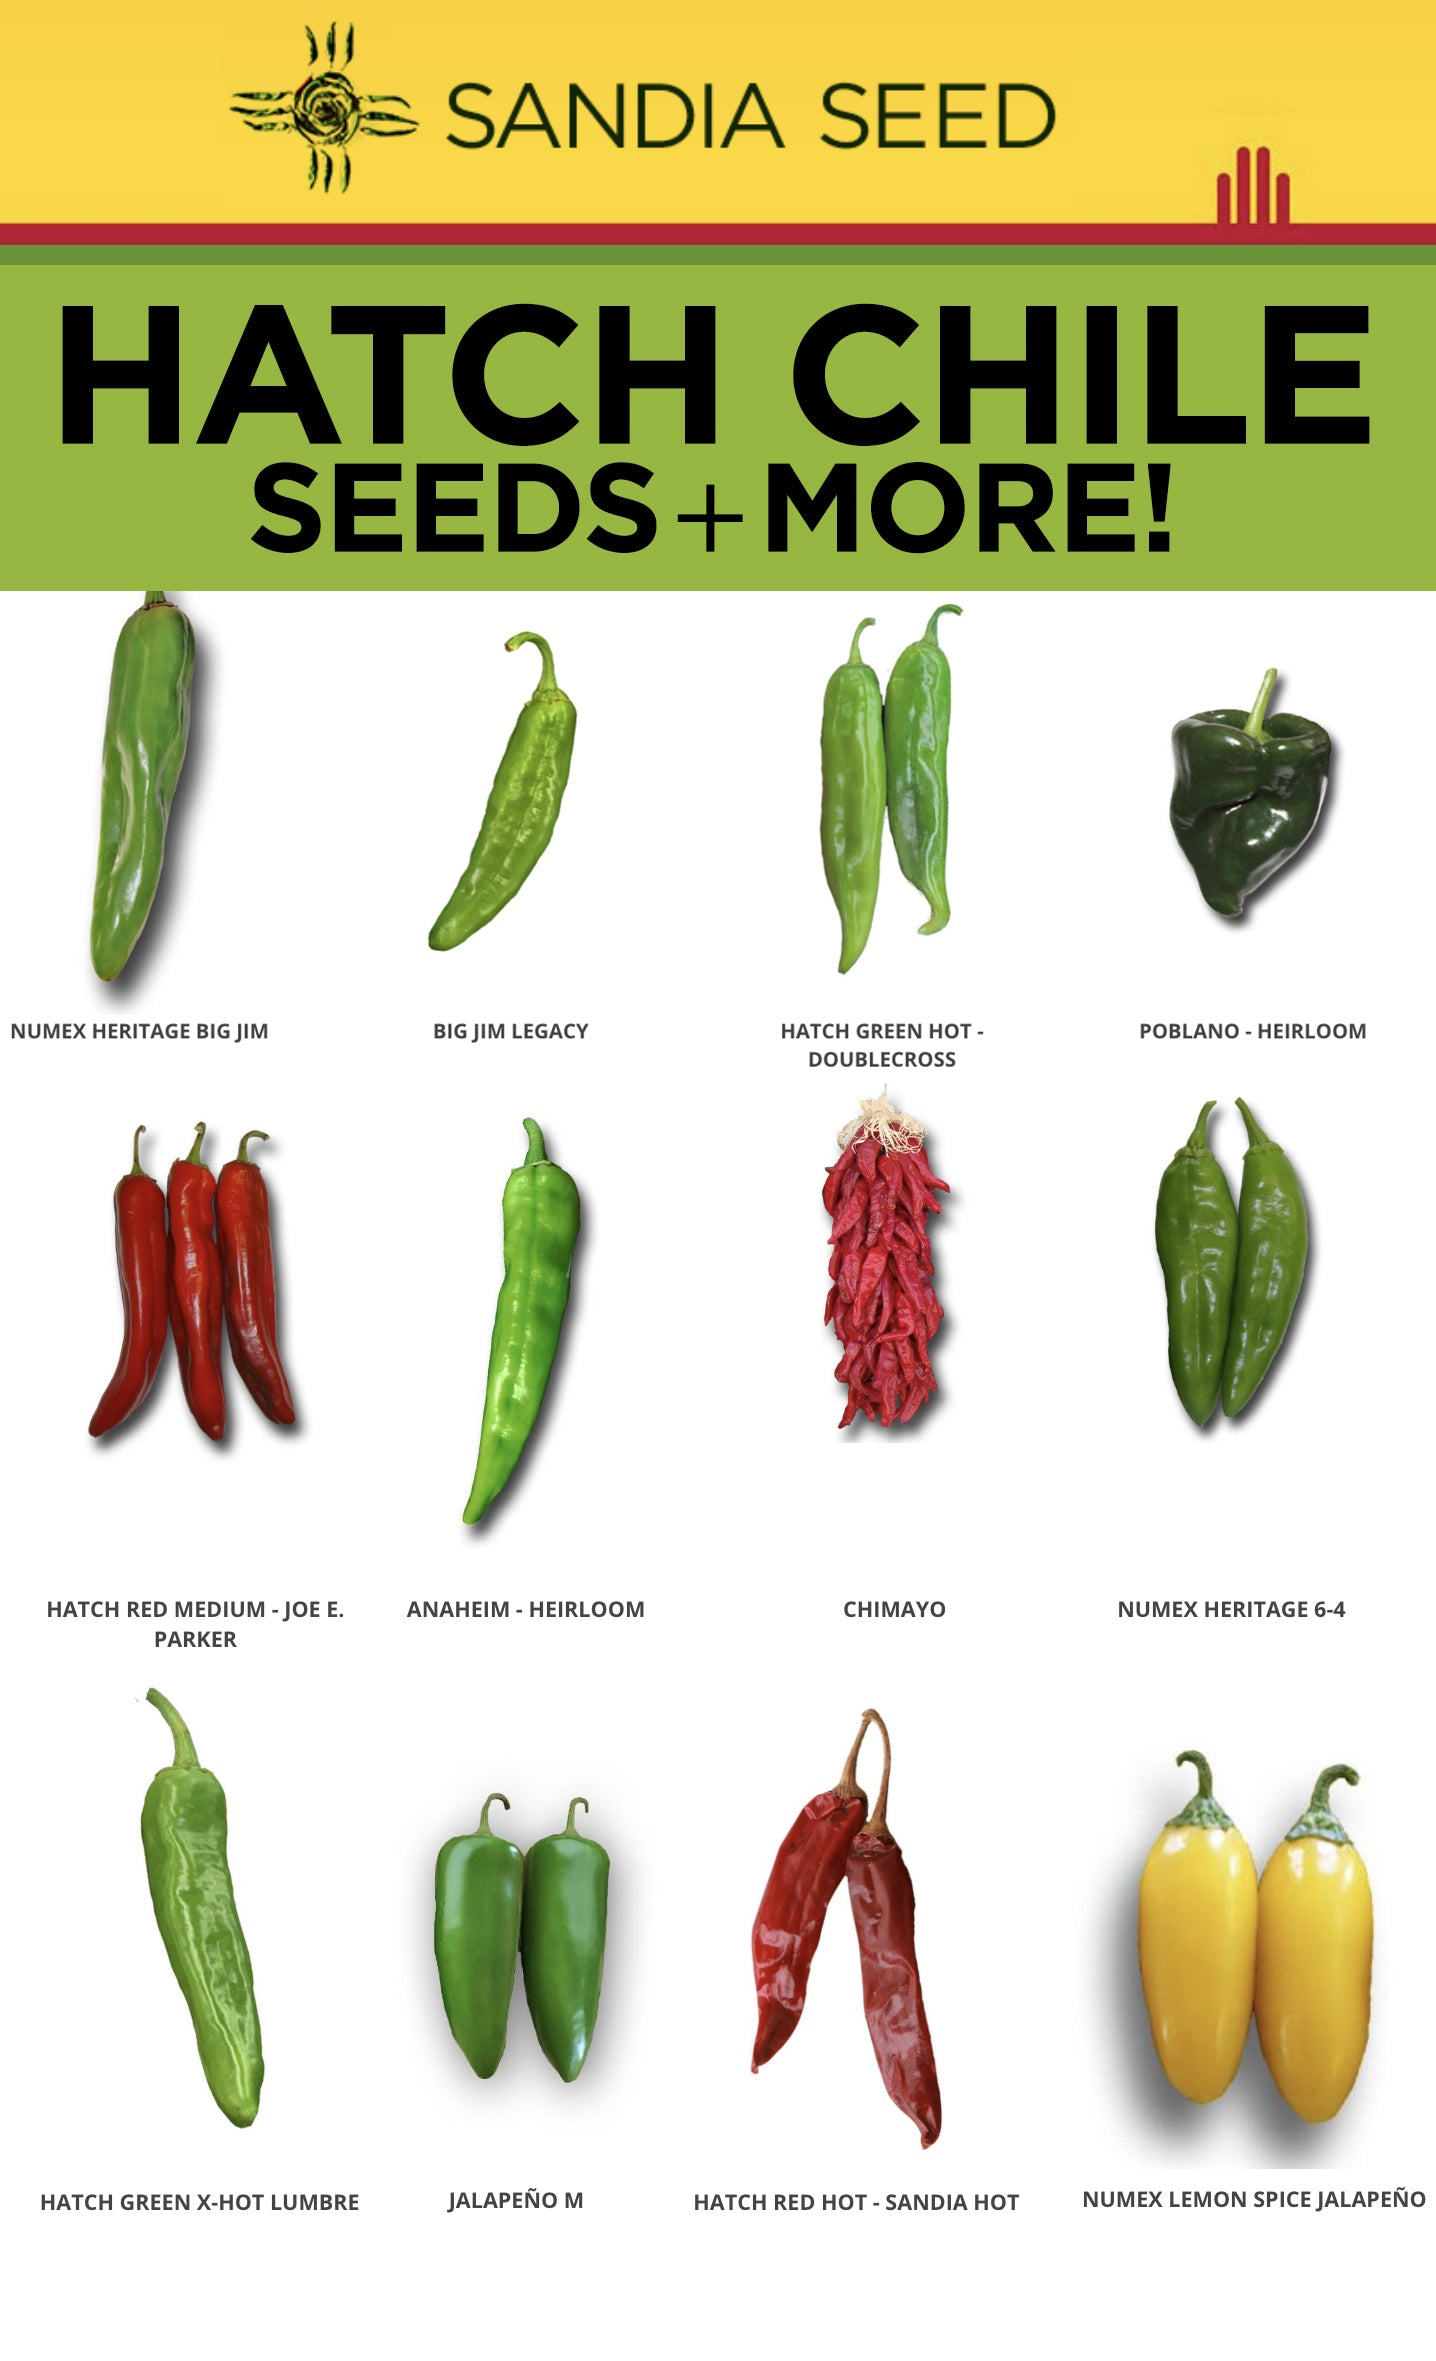 Where to buy Hatch Chile Seeds